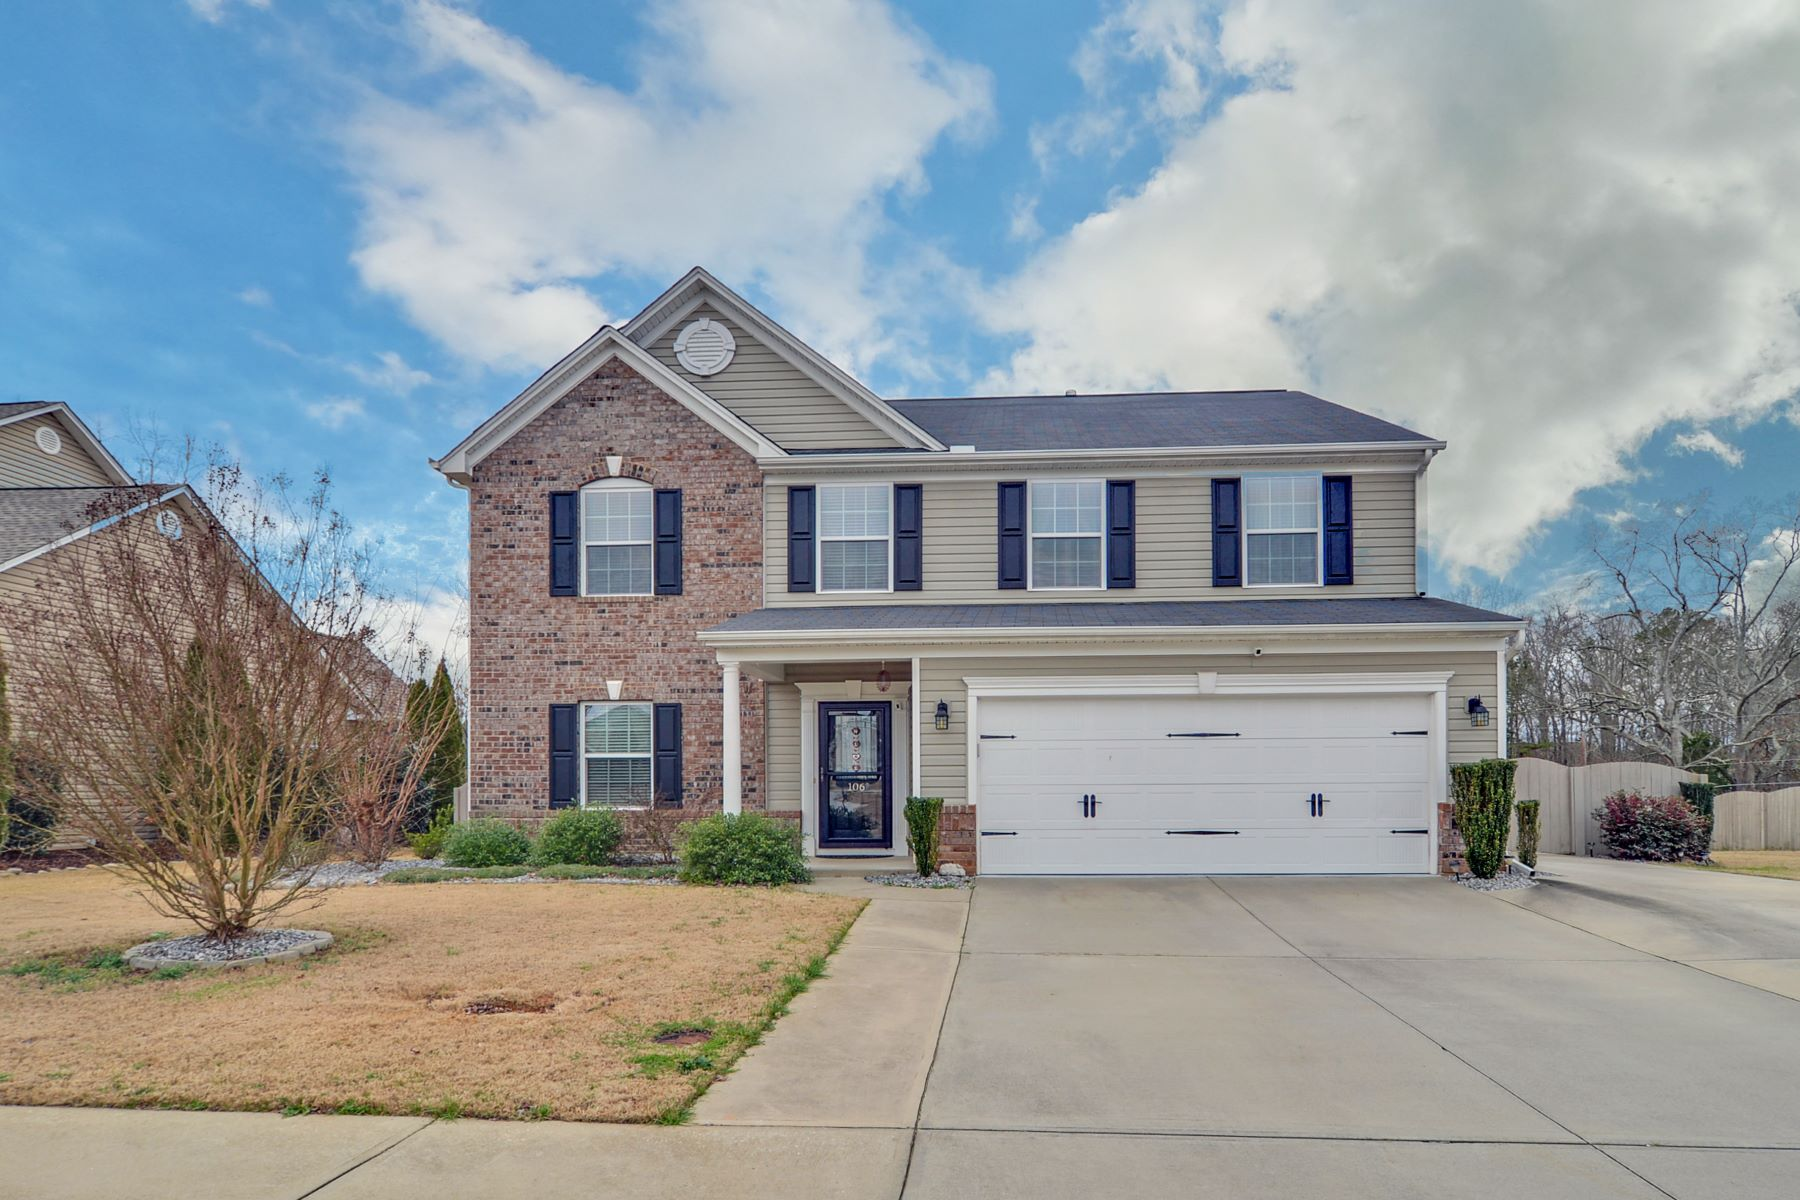 Single Family Homes for Active at 106 Brazos Lane, Simpsonville, SC 29680 106 Brazos Lane Simpsonville, South Carolina 29680 United States